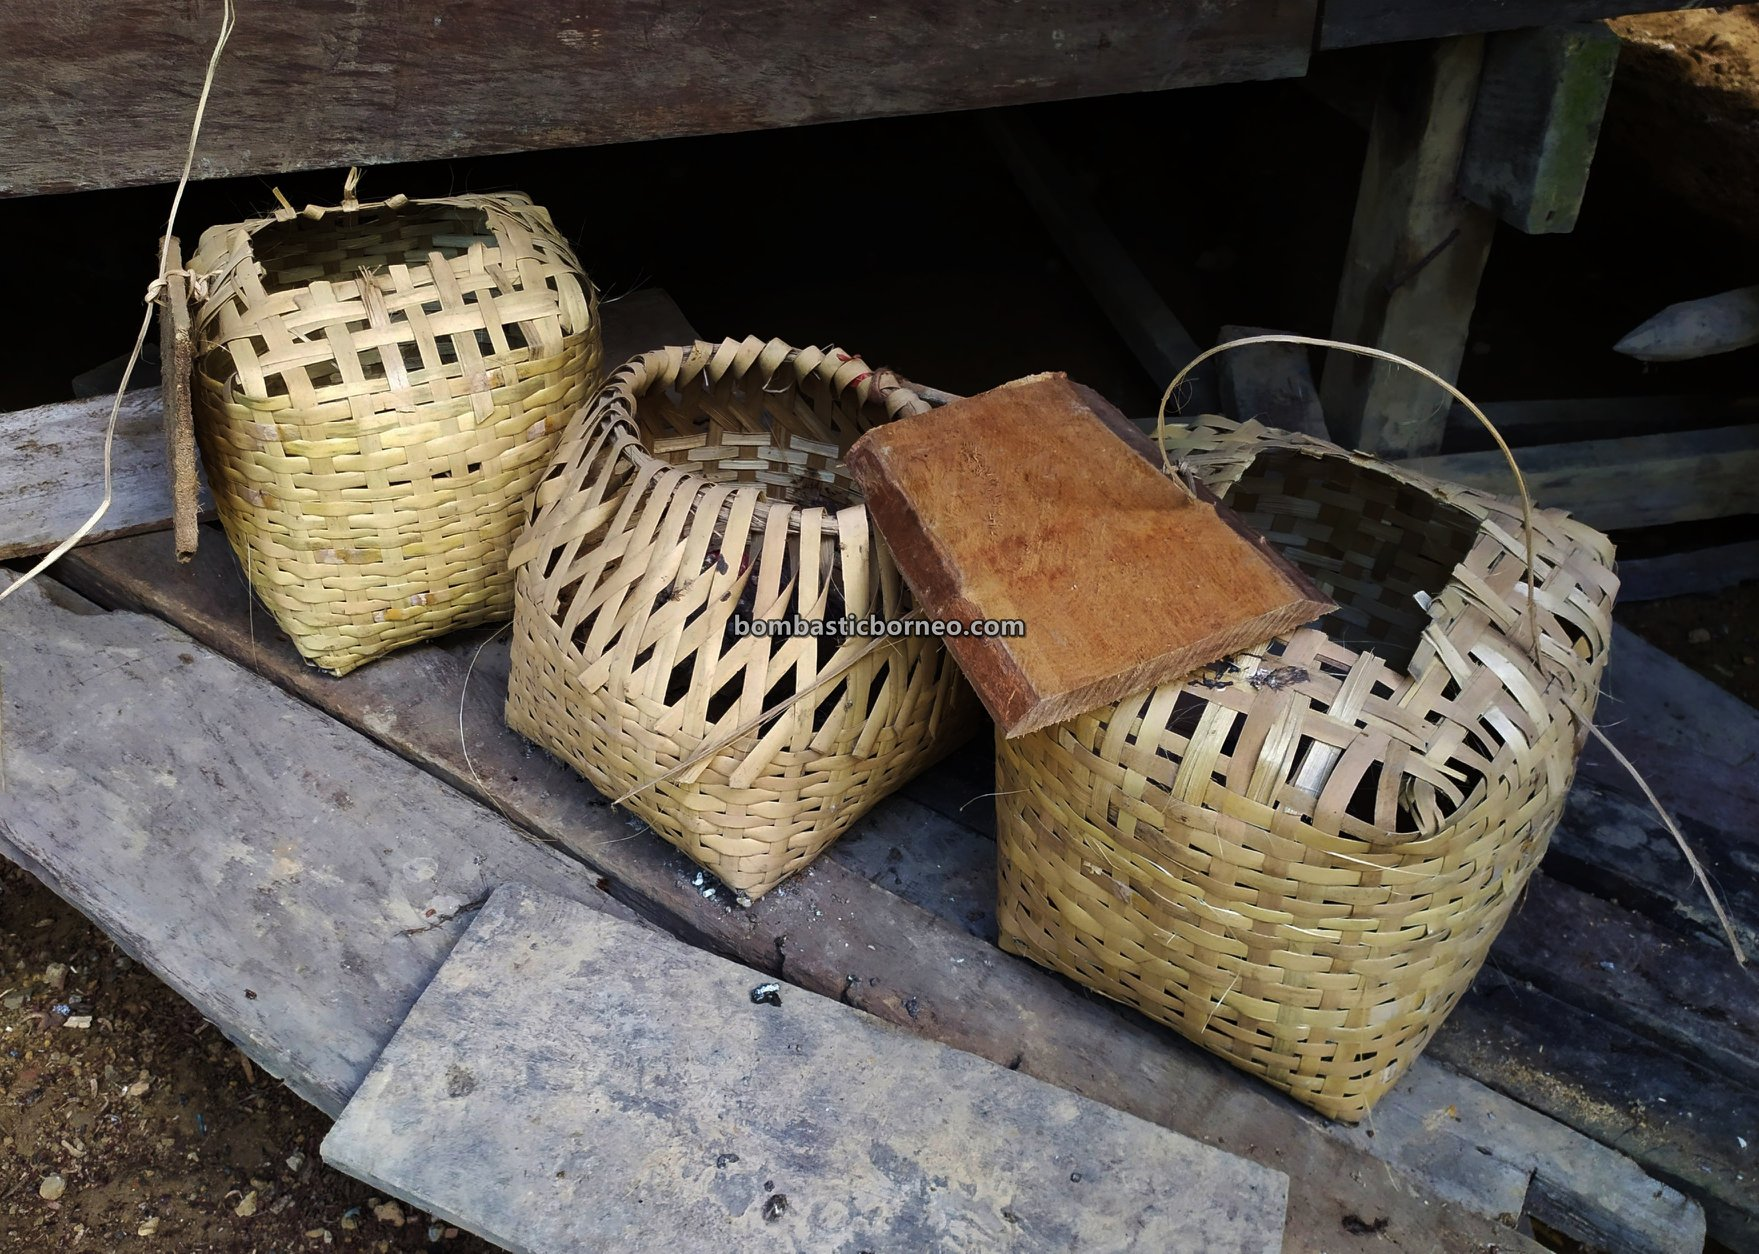 Dusun Medeng, authentic, traditional, Bengkayang, Indonesia, Siding, native, tribe, highland, Tourism, tourist attraction, Travel guide,